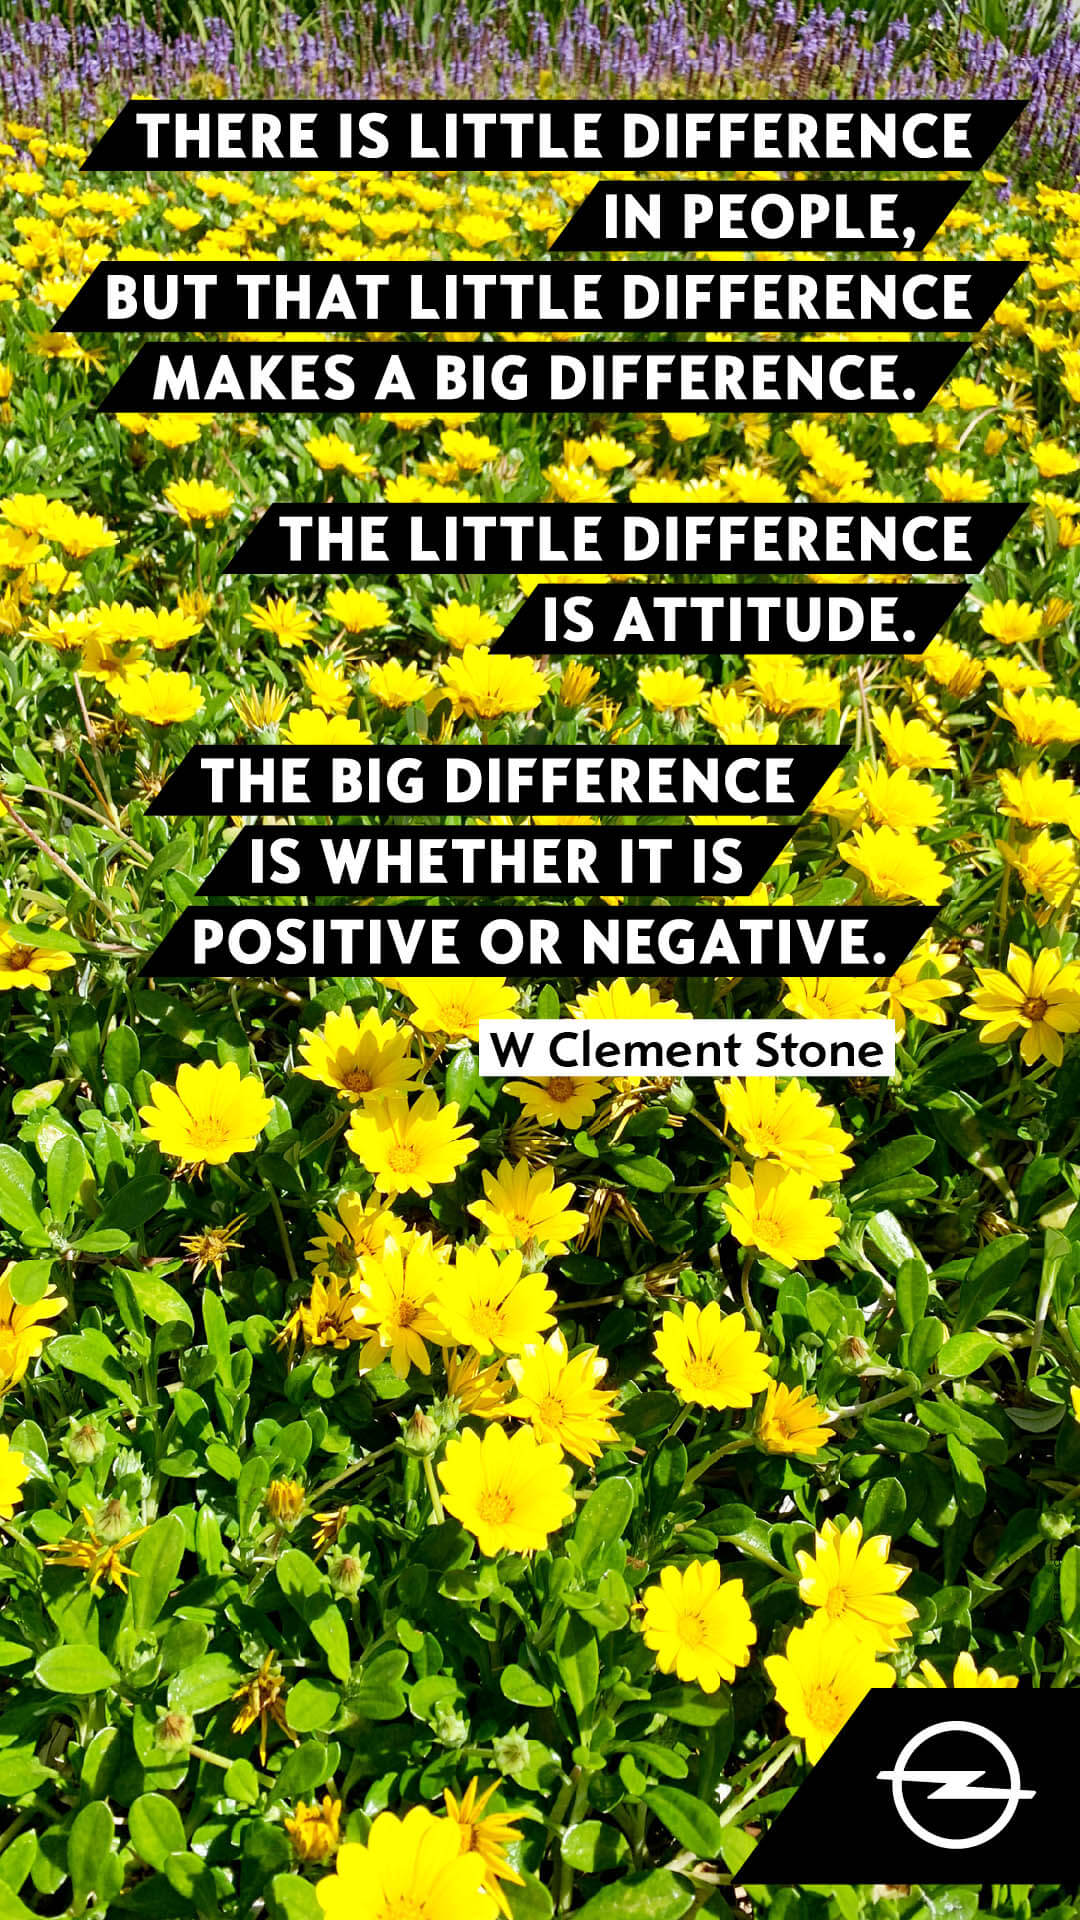 There is little difference in people, but that little difference makes a big difference. The little difference is attitude. The big difference is whether it is positive or negative.